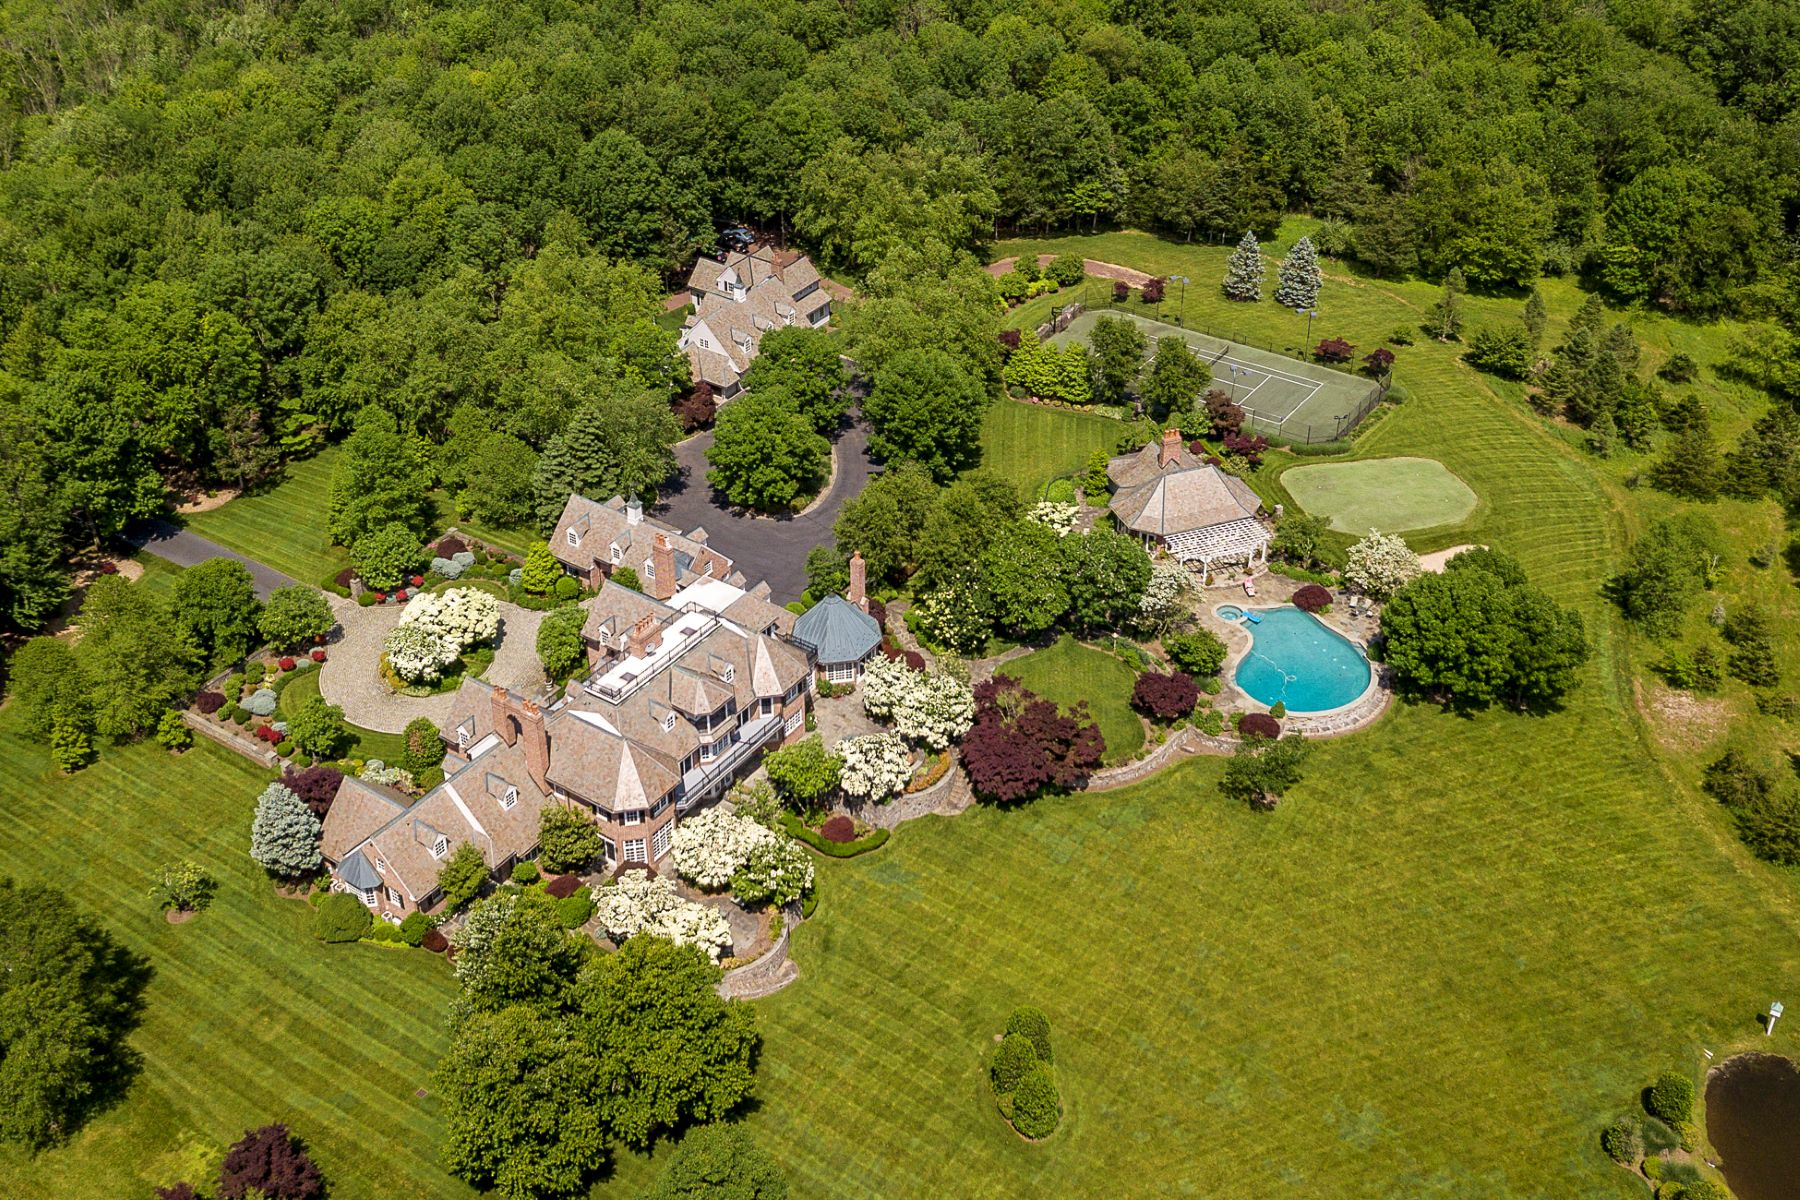 Private Compound with Every Amenity Imaginable 82 Aunt Molly Road, Hopewell, New Jersey 08525 Förenta staterna